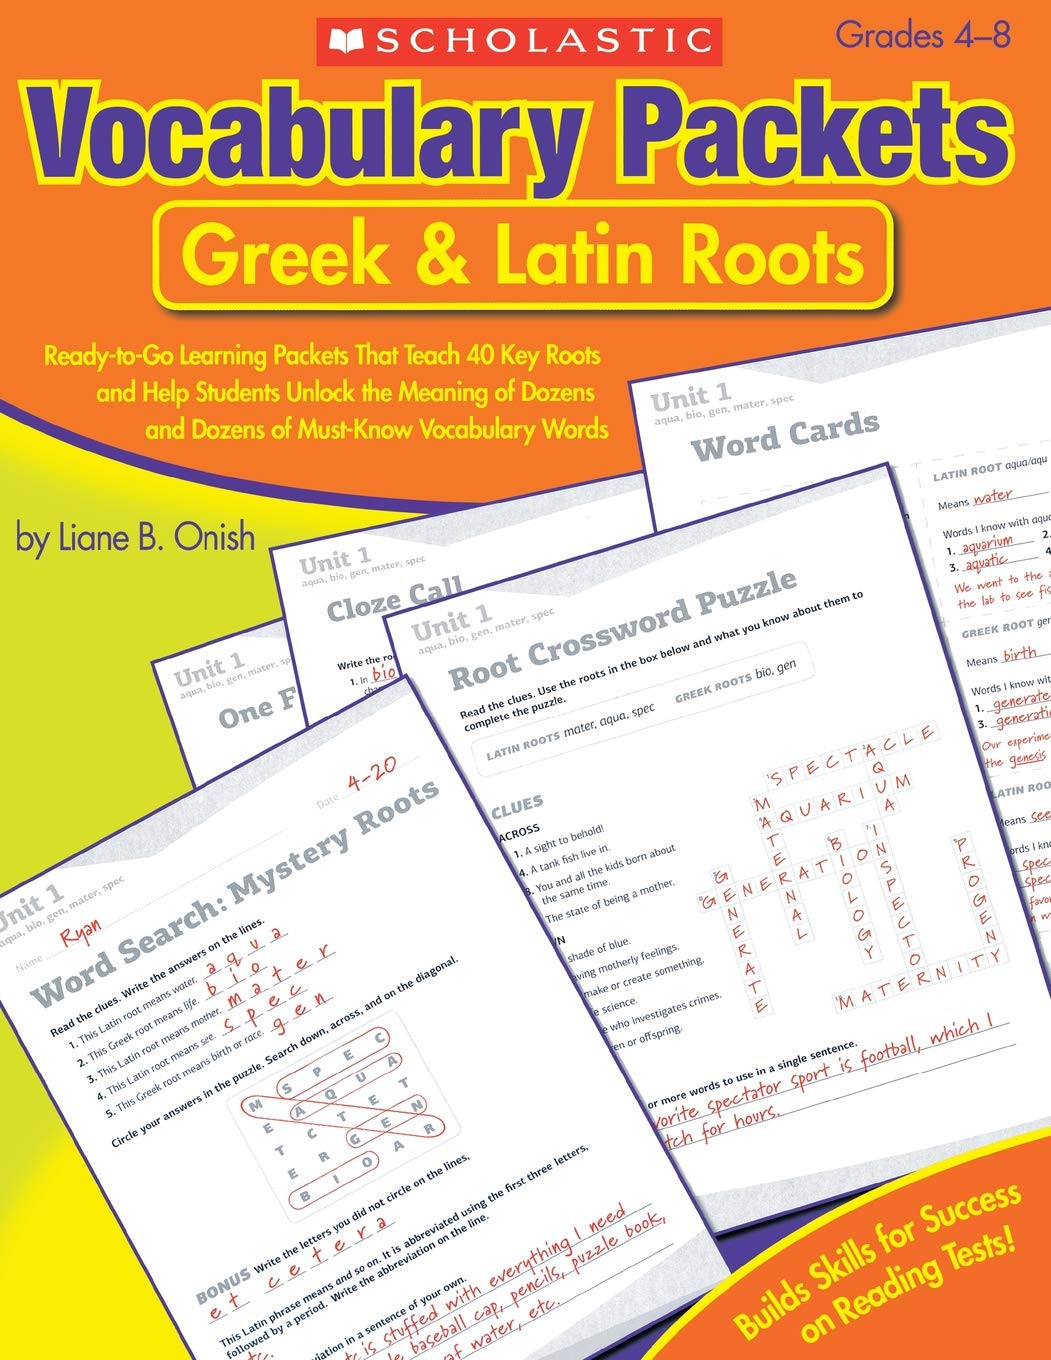 Greek and Latin Roots Worksheet Amazon Vocabulary Packets Greek & Latin Roots Ready